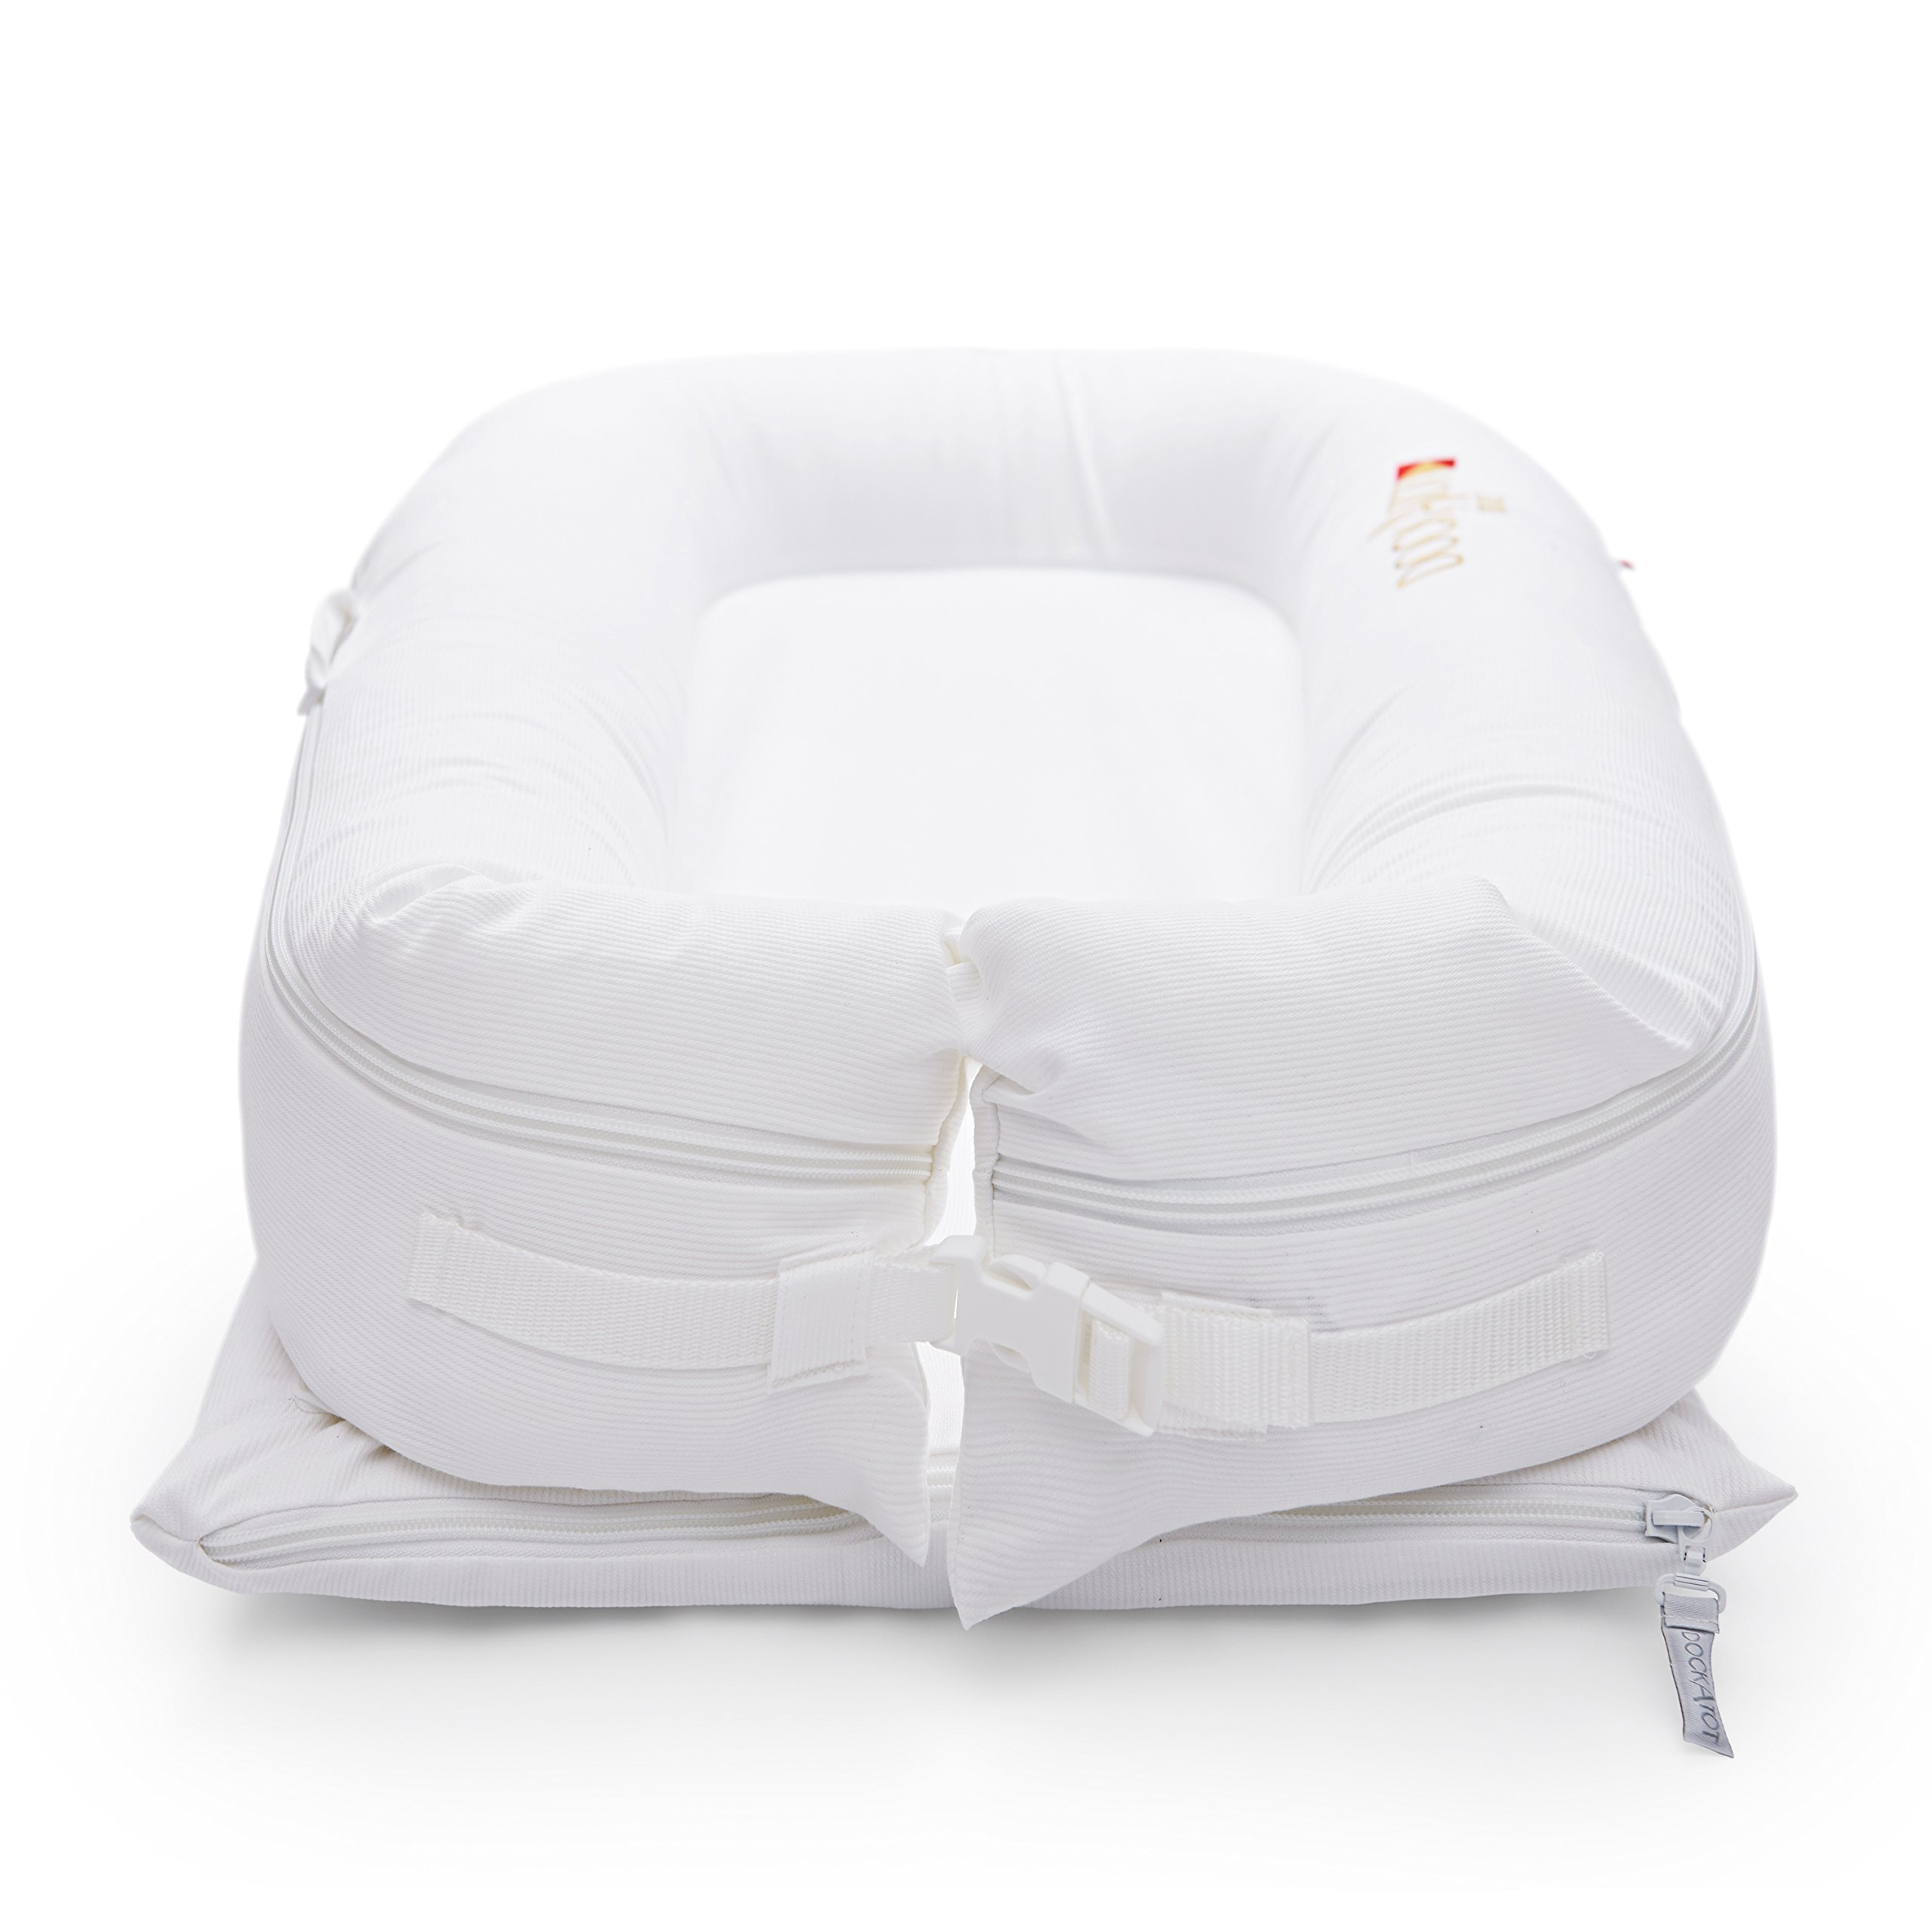 DockATot Deluxe+ Dock (Pristine White) - The All in One Baby Lounger - Perfect for Co Sleeping - Suitable from 0-8 Months (Pristine White) by DockATot (Image #3)